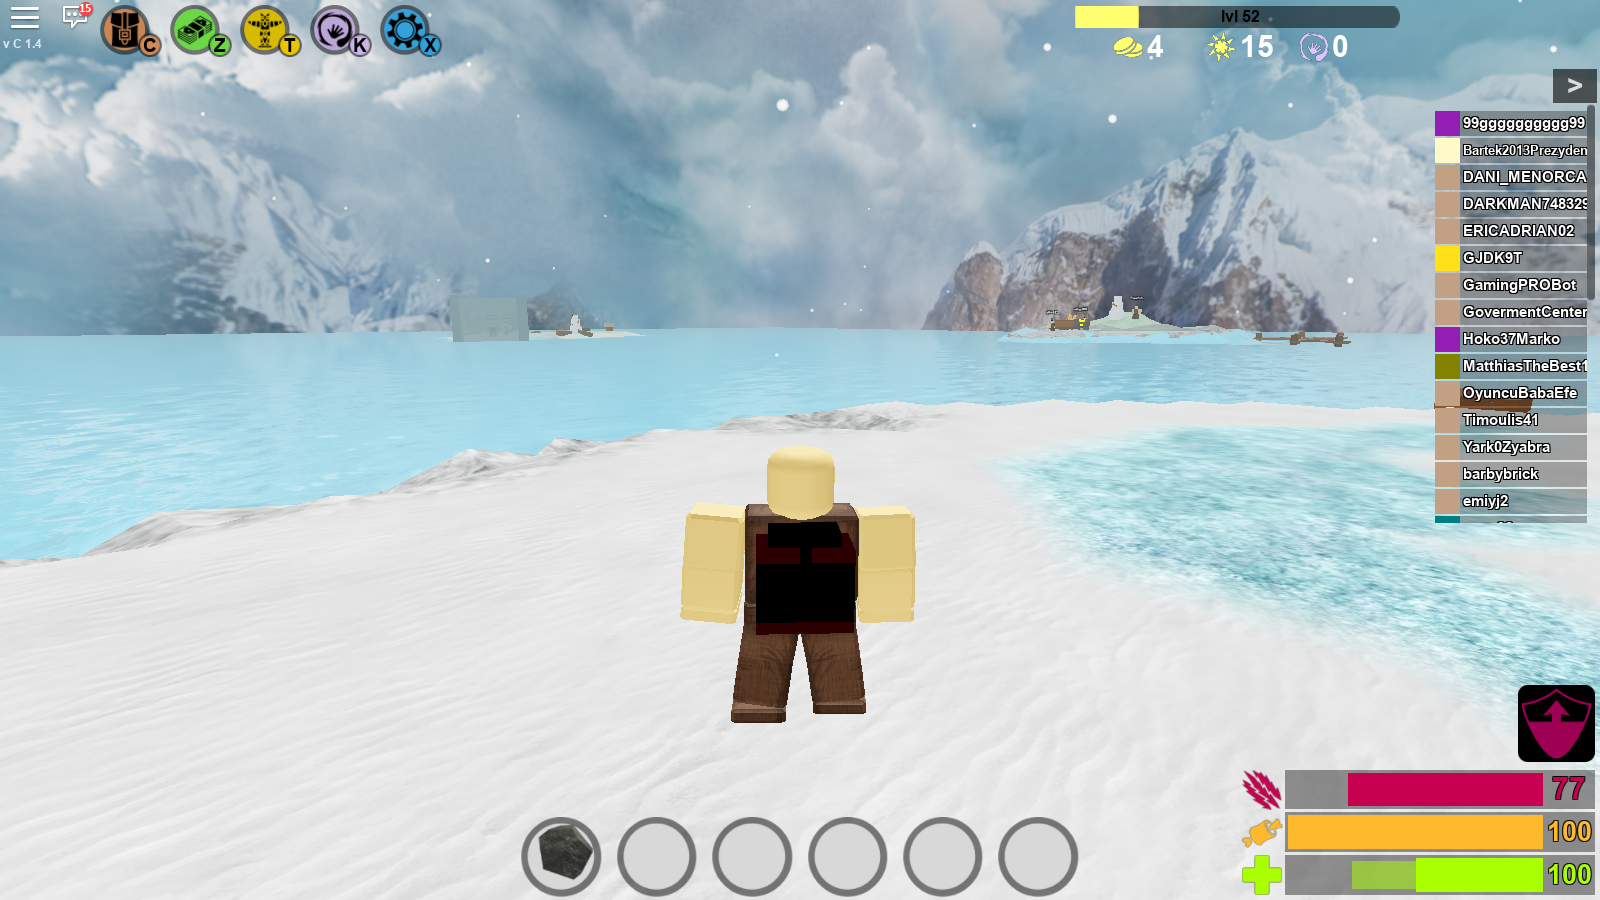 Roblox Booga Booga Good Game Or Just A Rumor Players Forum